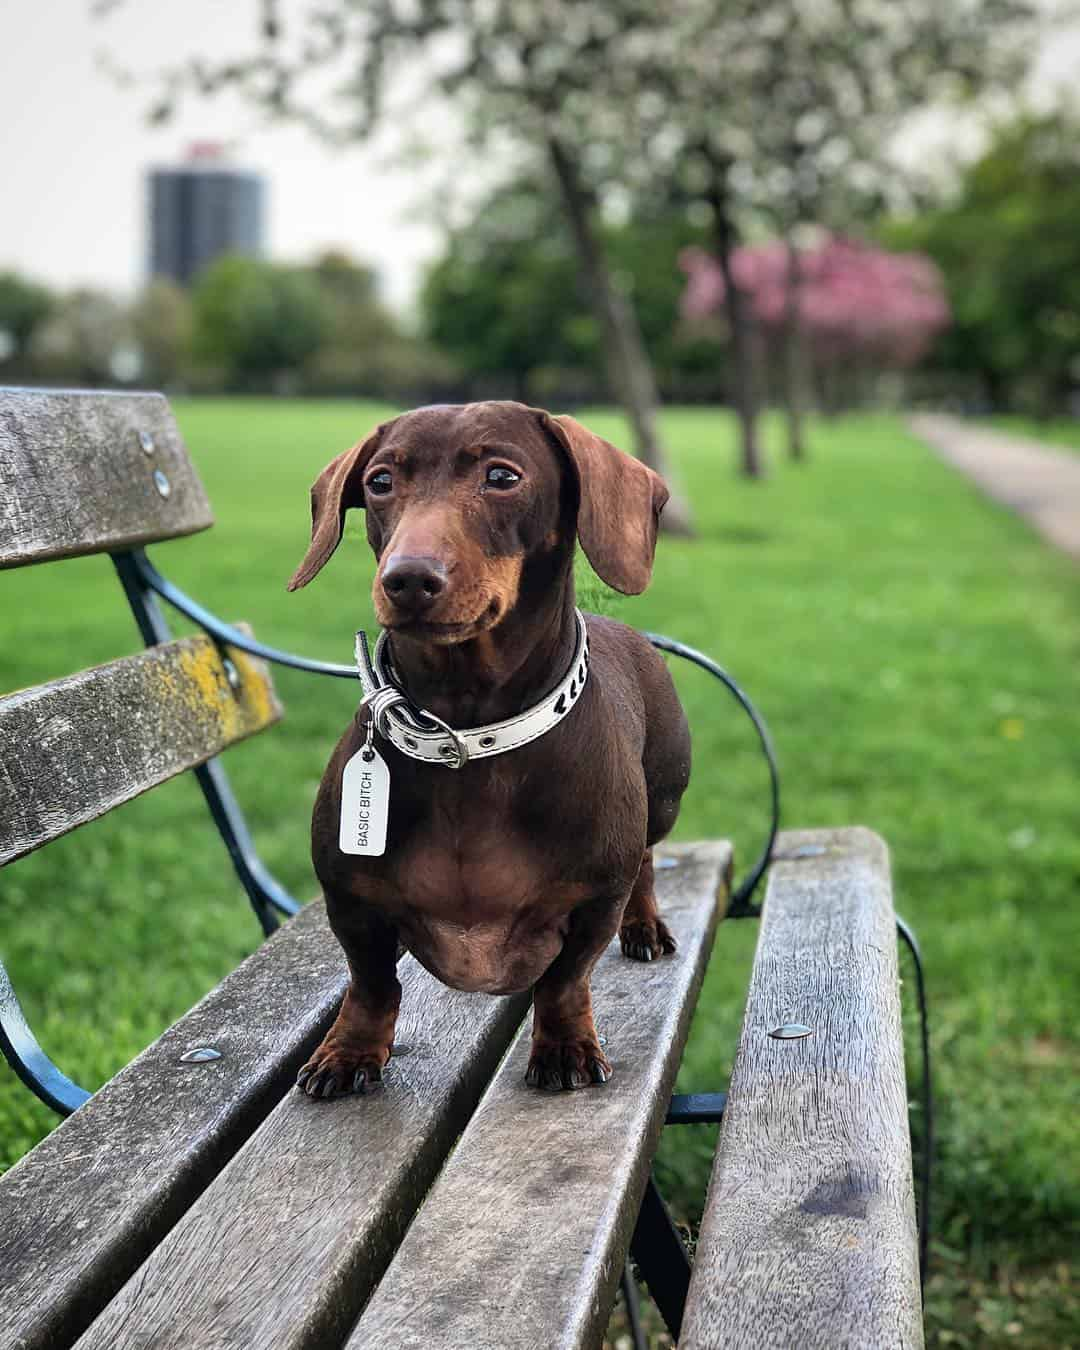 My Dog Friendly London by Pops the Sausage - Victoria Park Pops 1